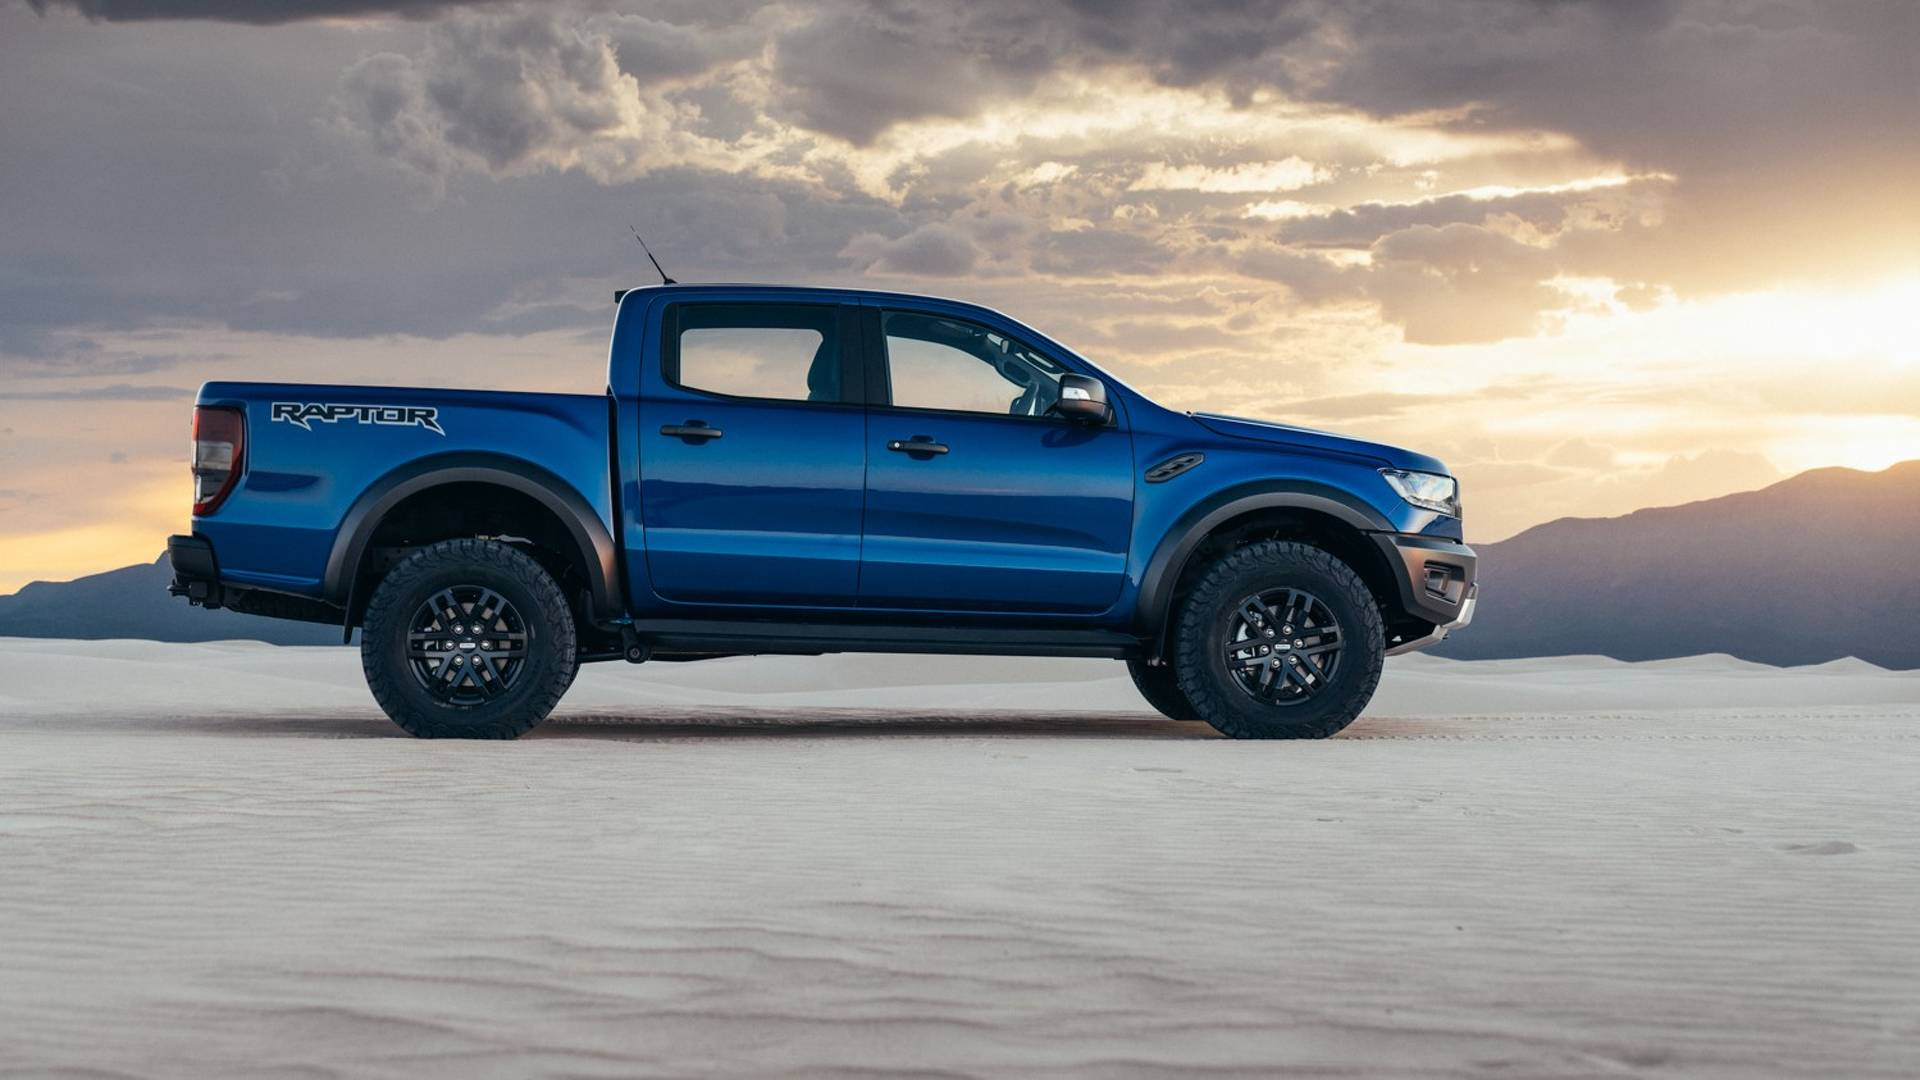 Ford Ranger Raptor 2018 (7)